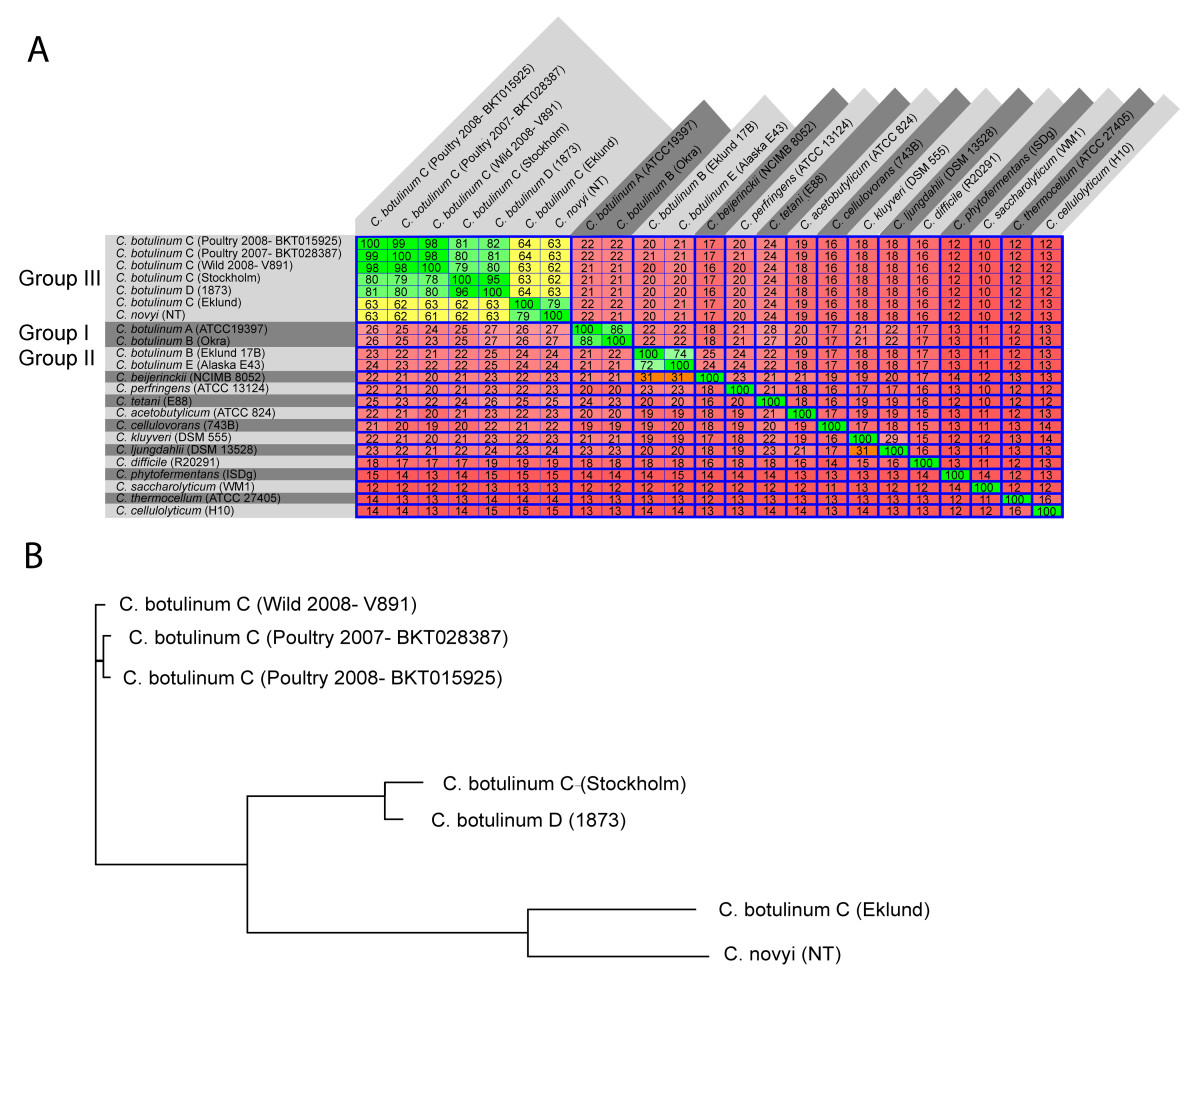 https://static-content.springer.com/image/art%3A10.1186%2F1471-2164-12-185/MediaObjects/12864_2011_Article_3330_Fig2_HTML.jpg